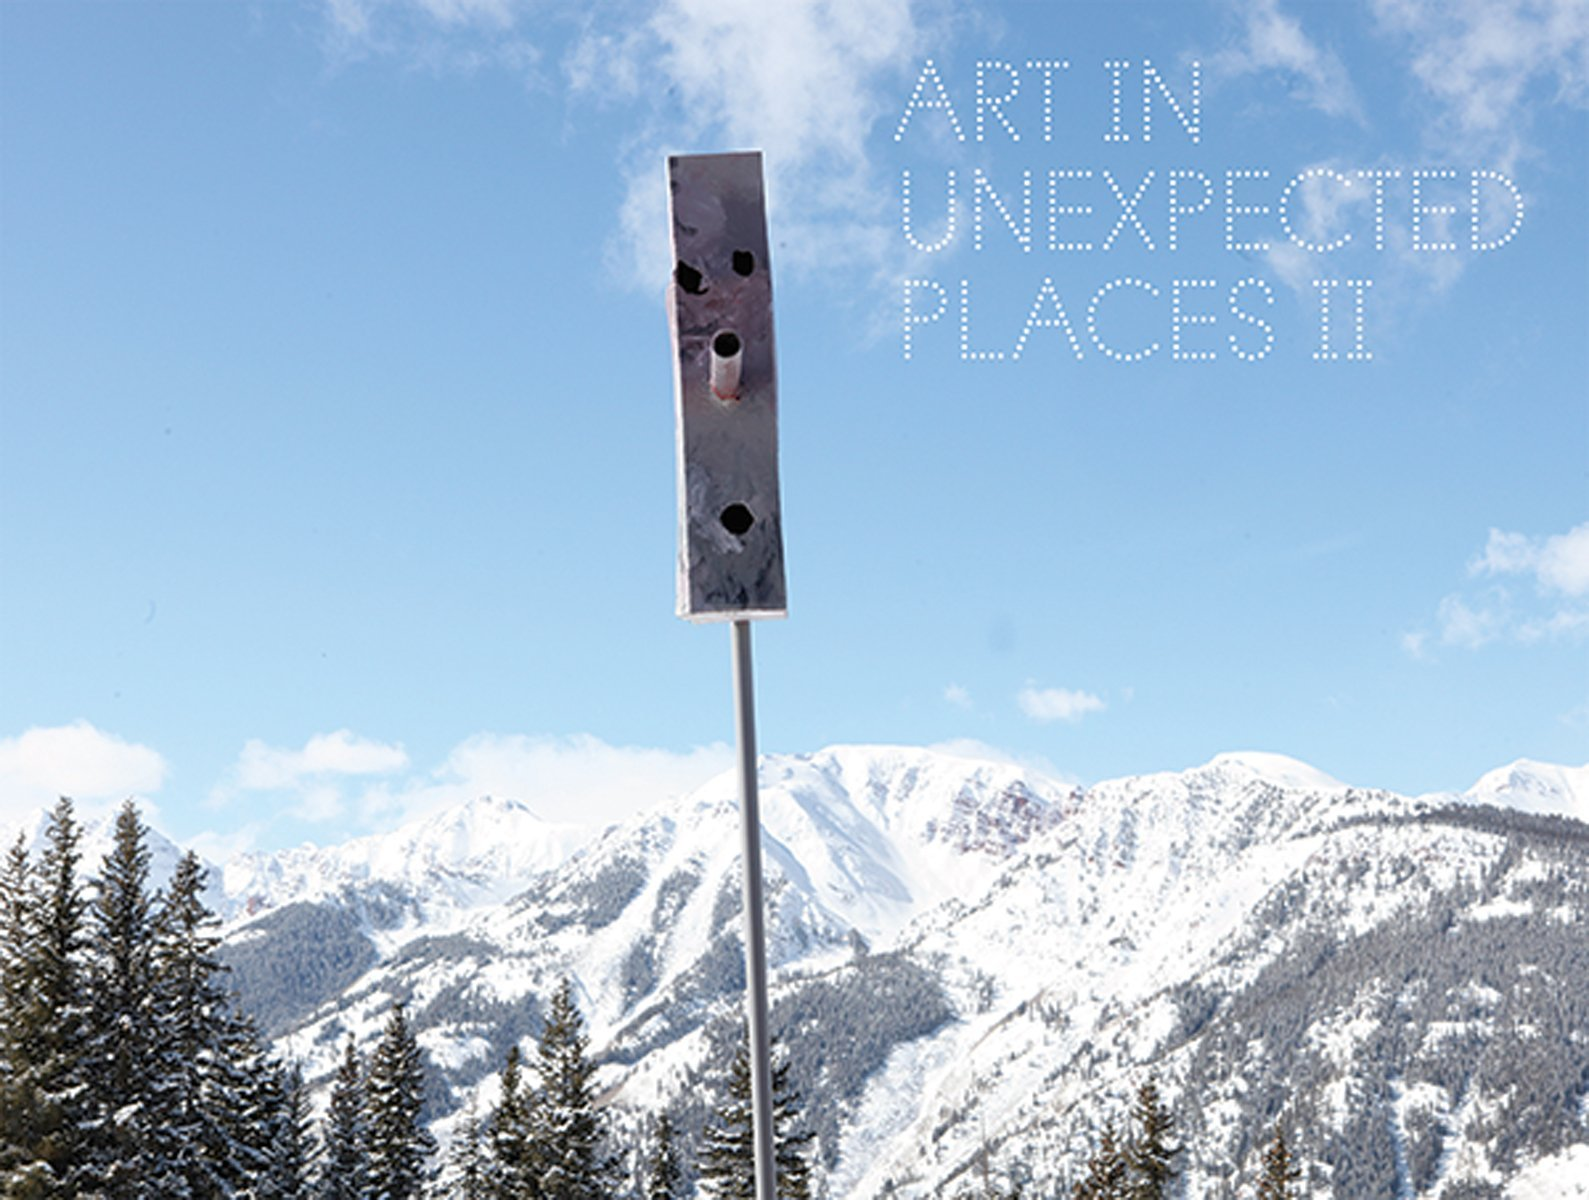 Art in Unexpected Places II